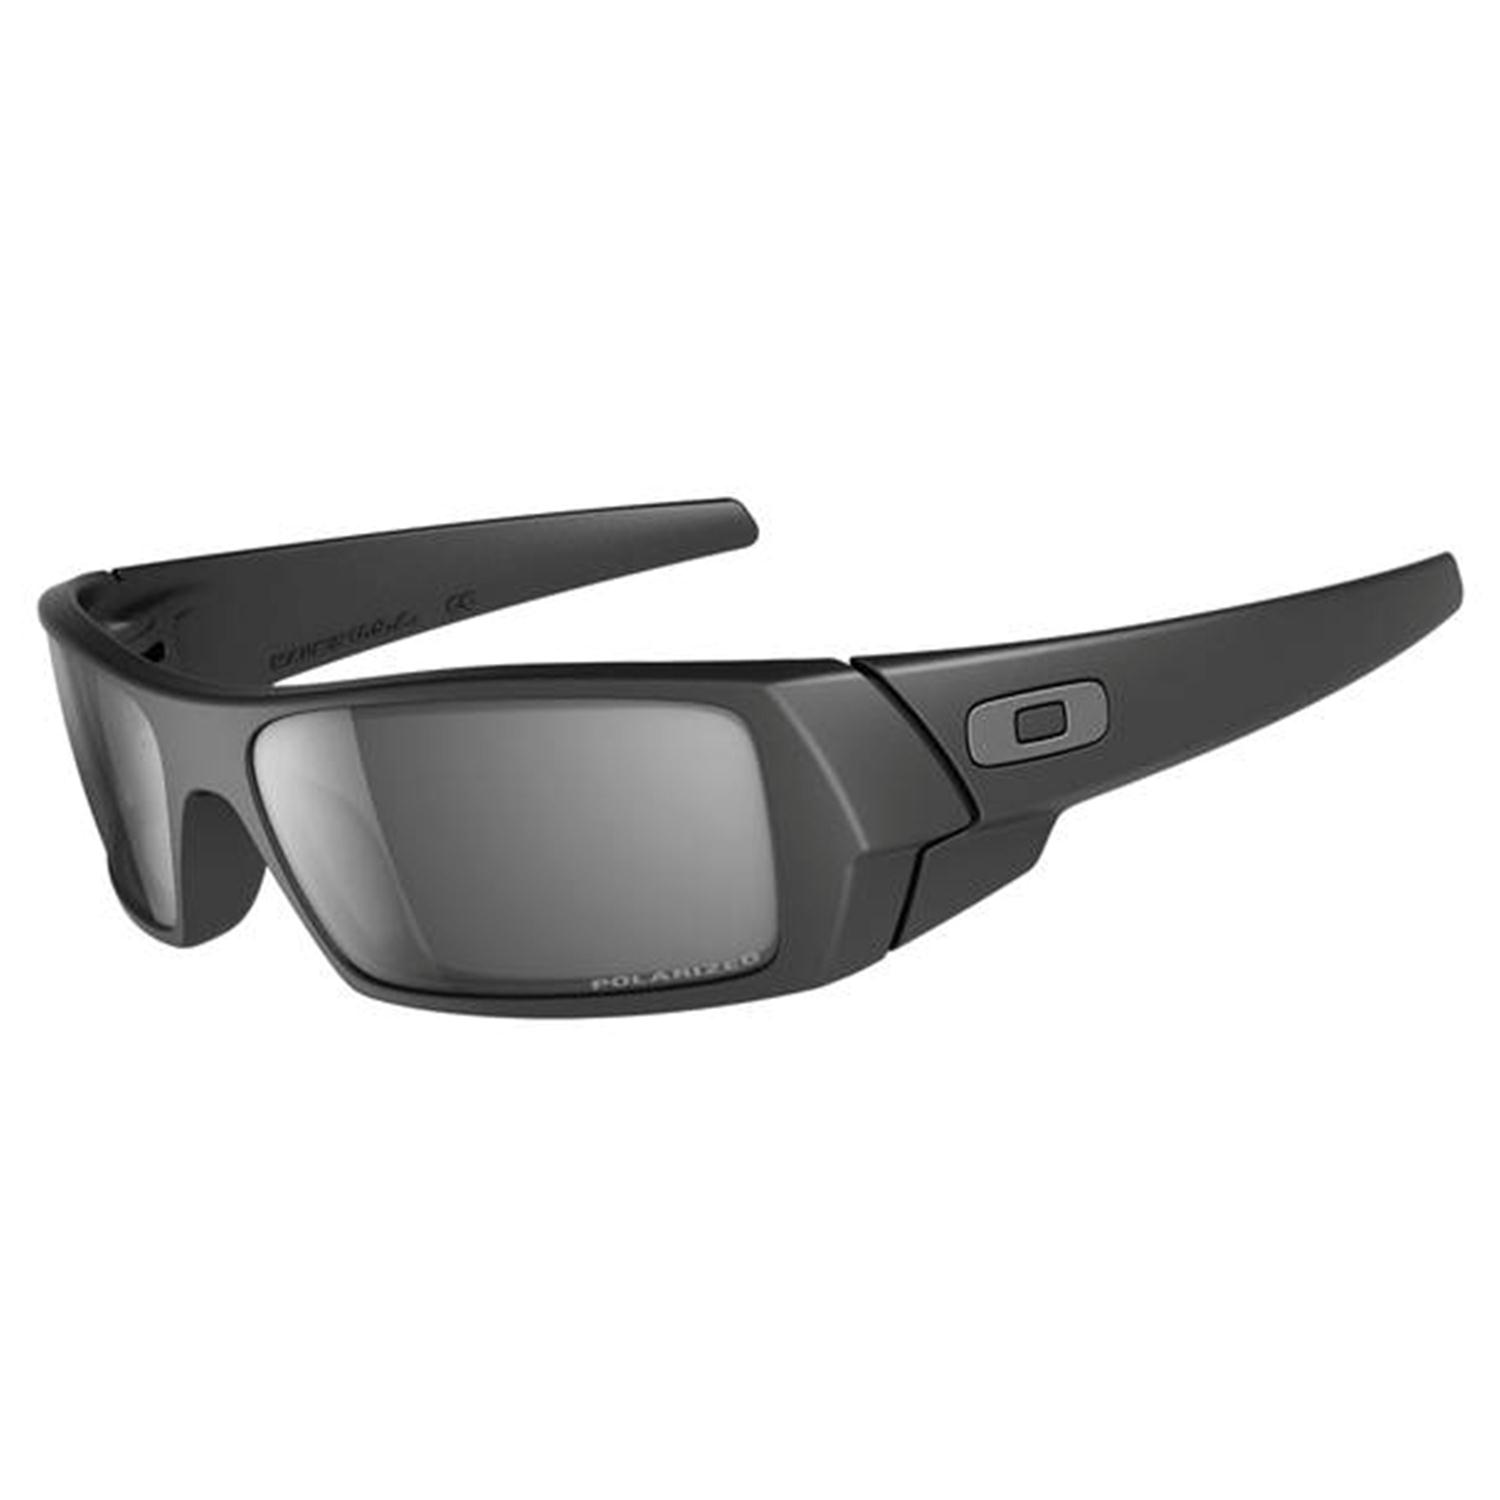 Nsbctfqrynwuxte Buy Oakley Sunglasses